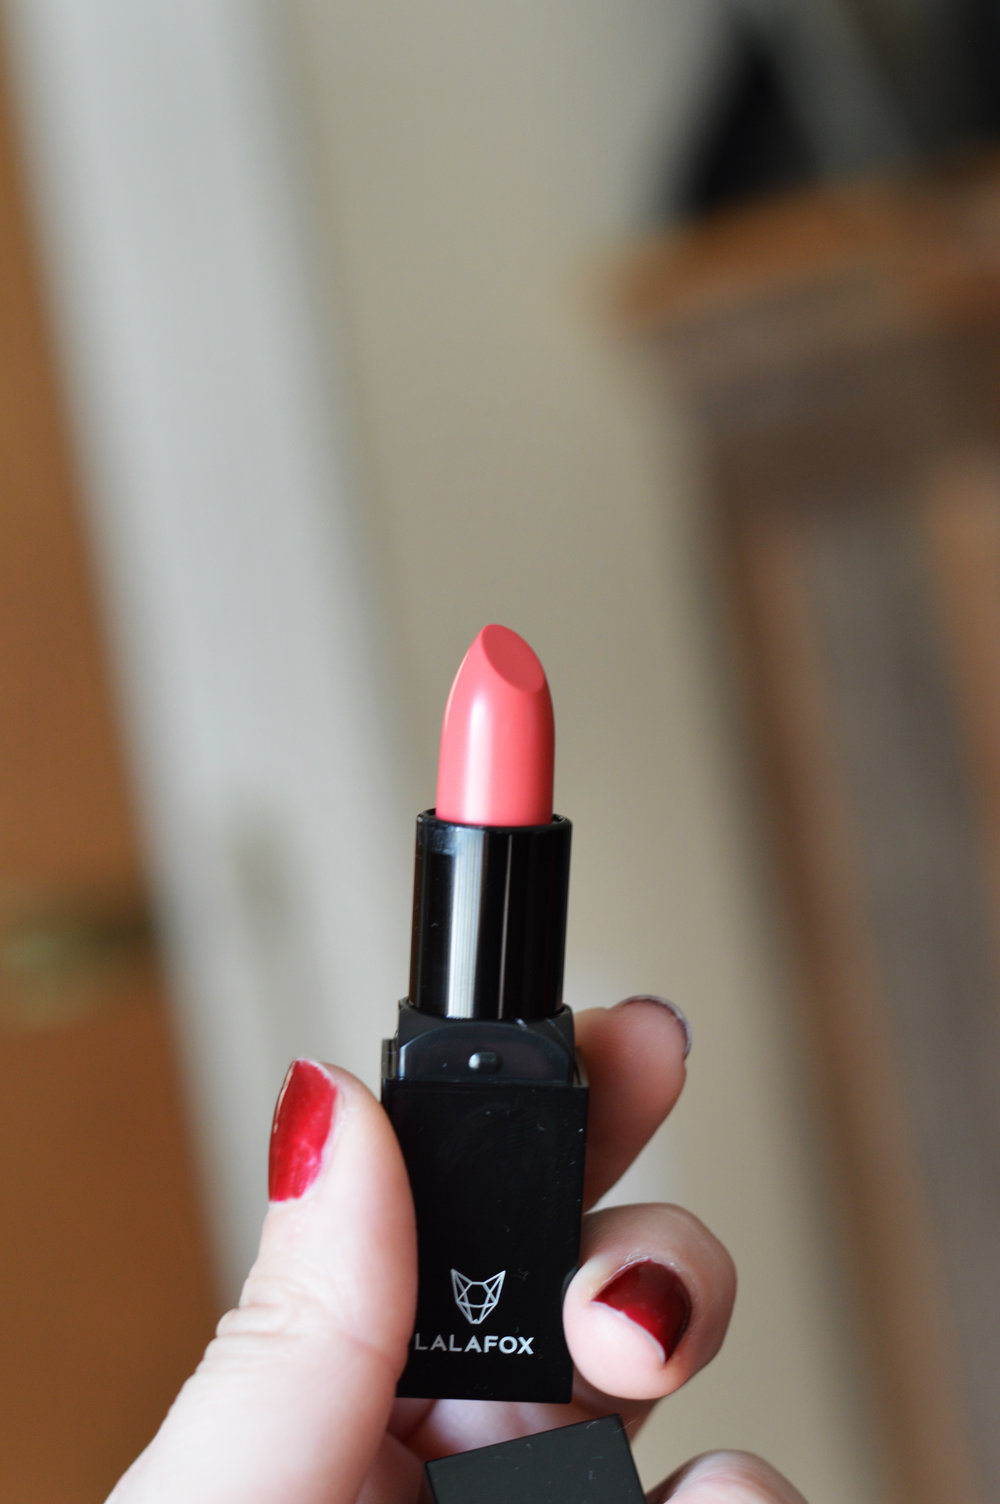 lalafox beauty lipstick review jin